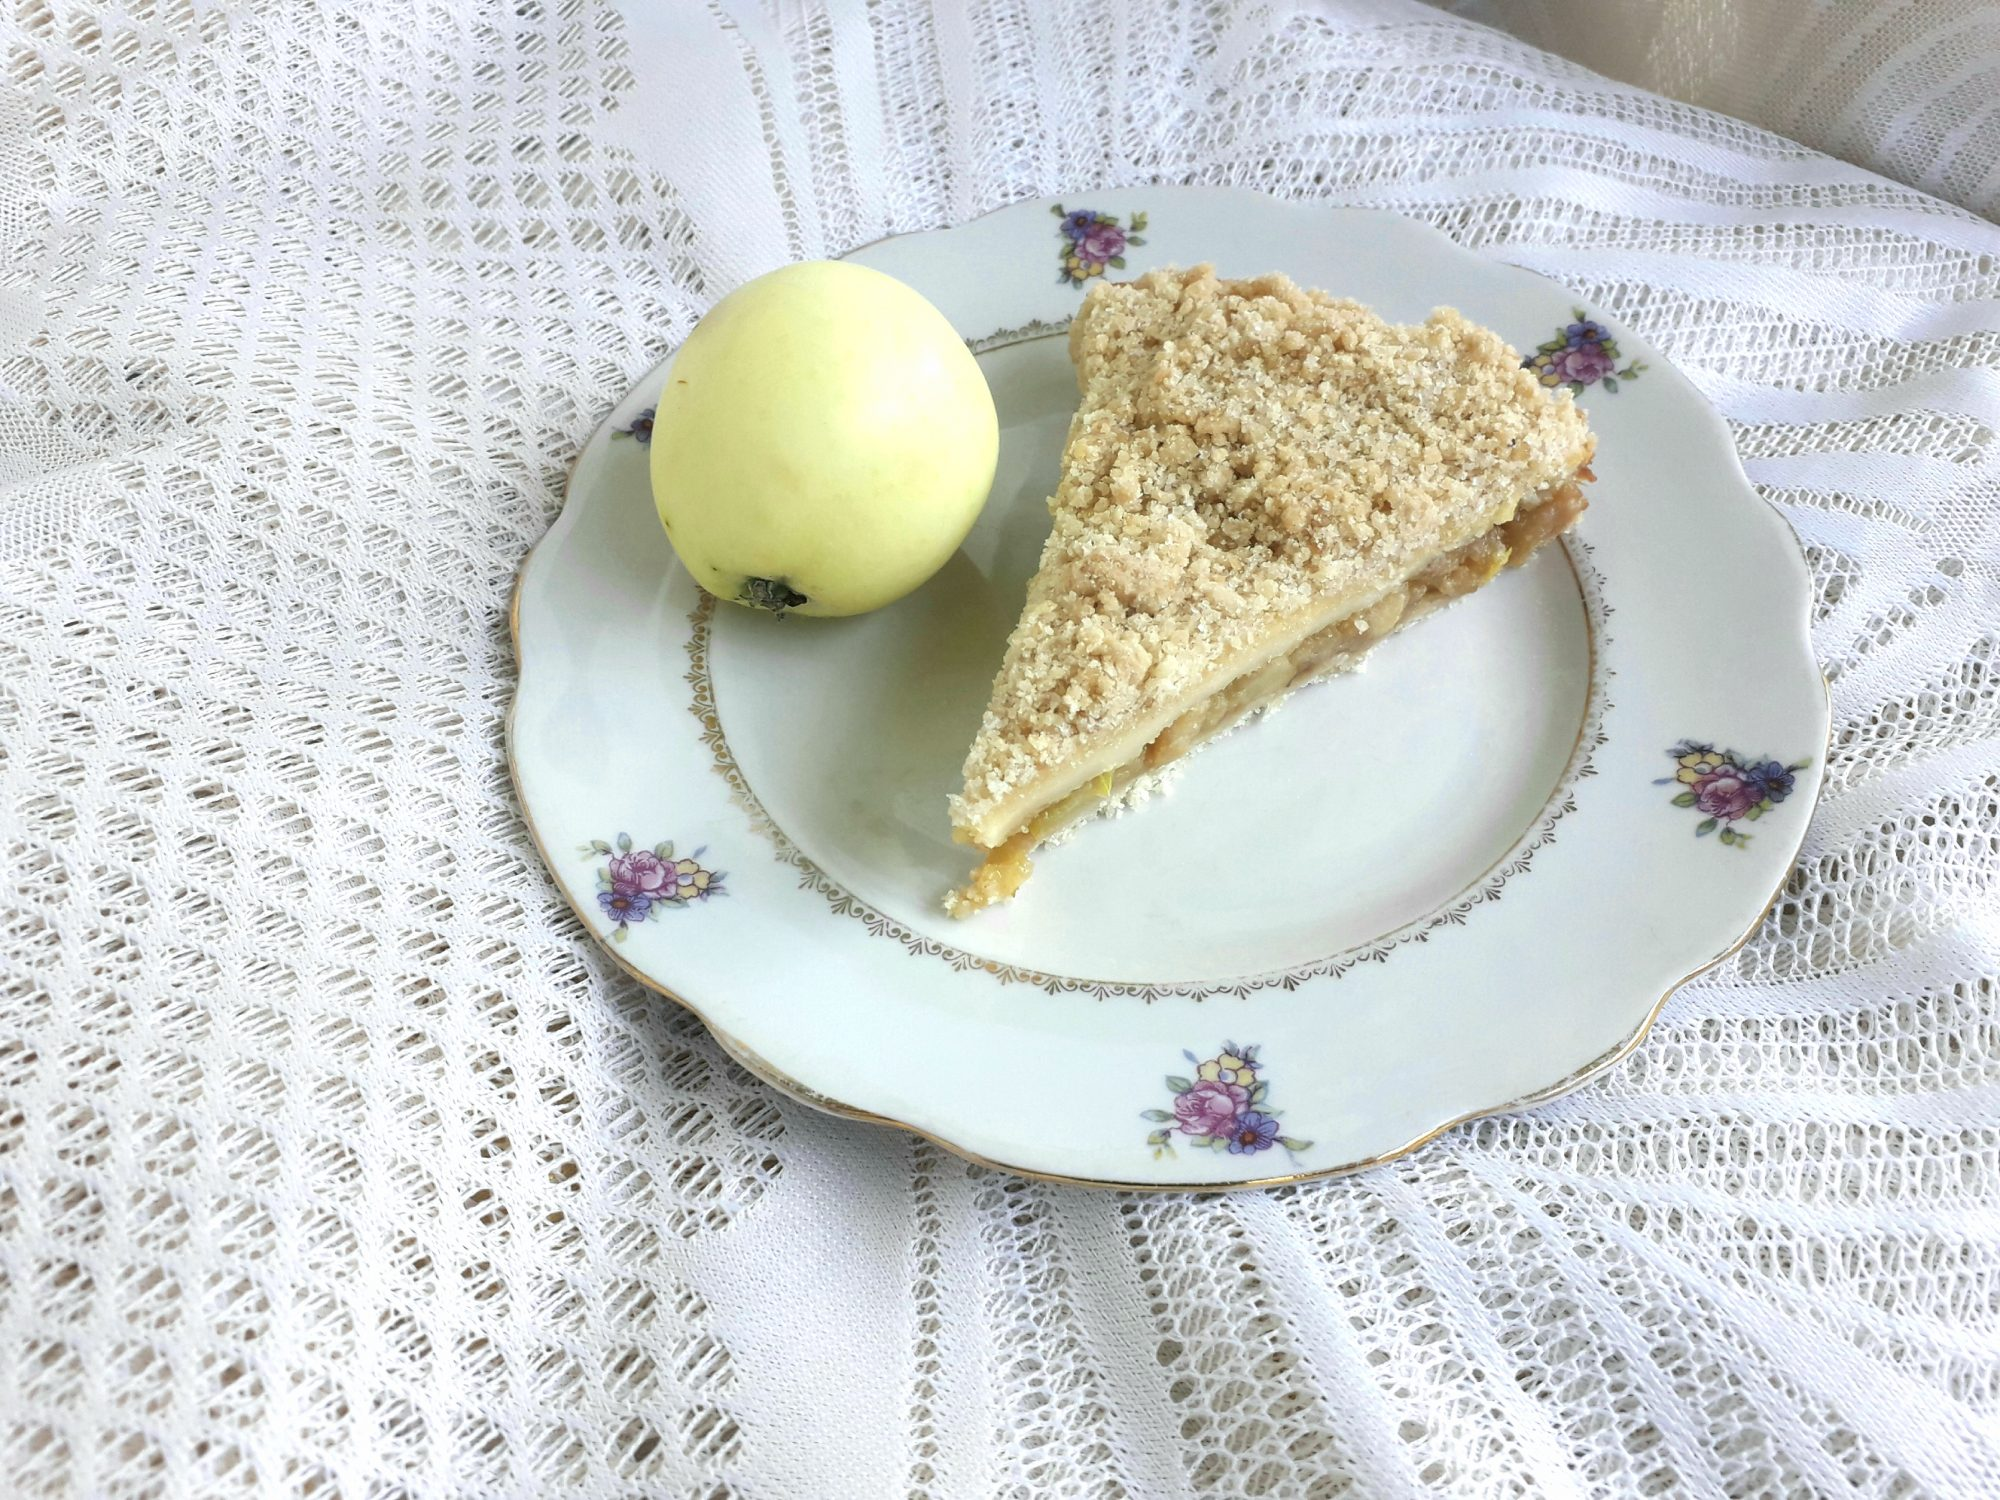 Apple buttermilk pie on white china plate